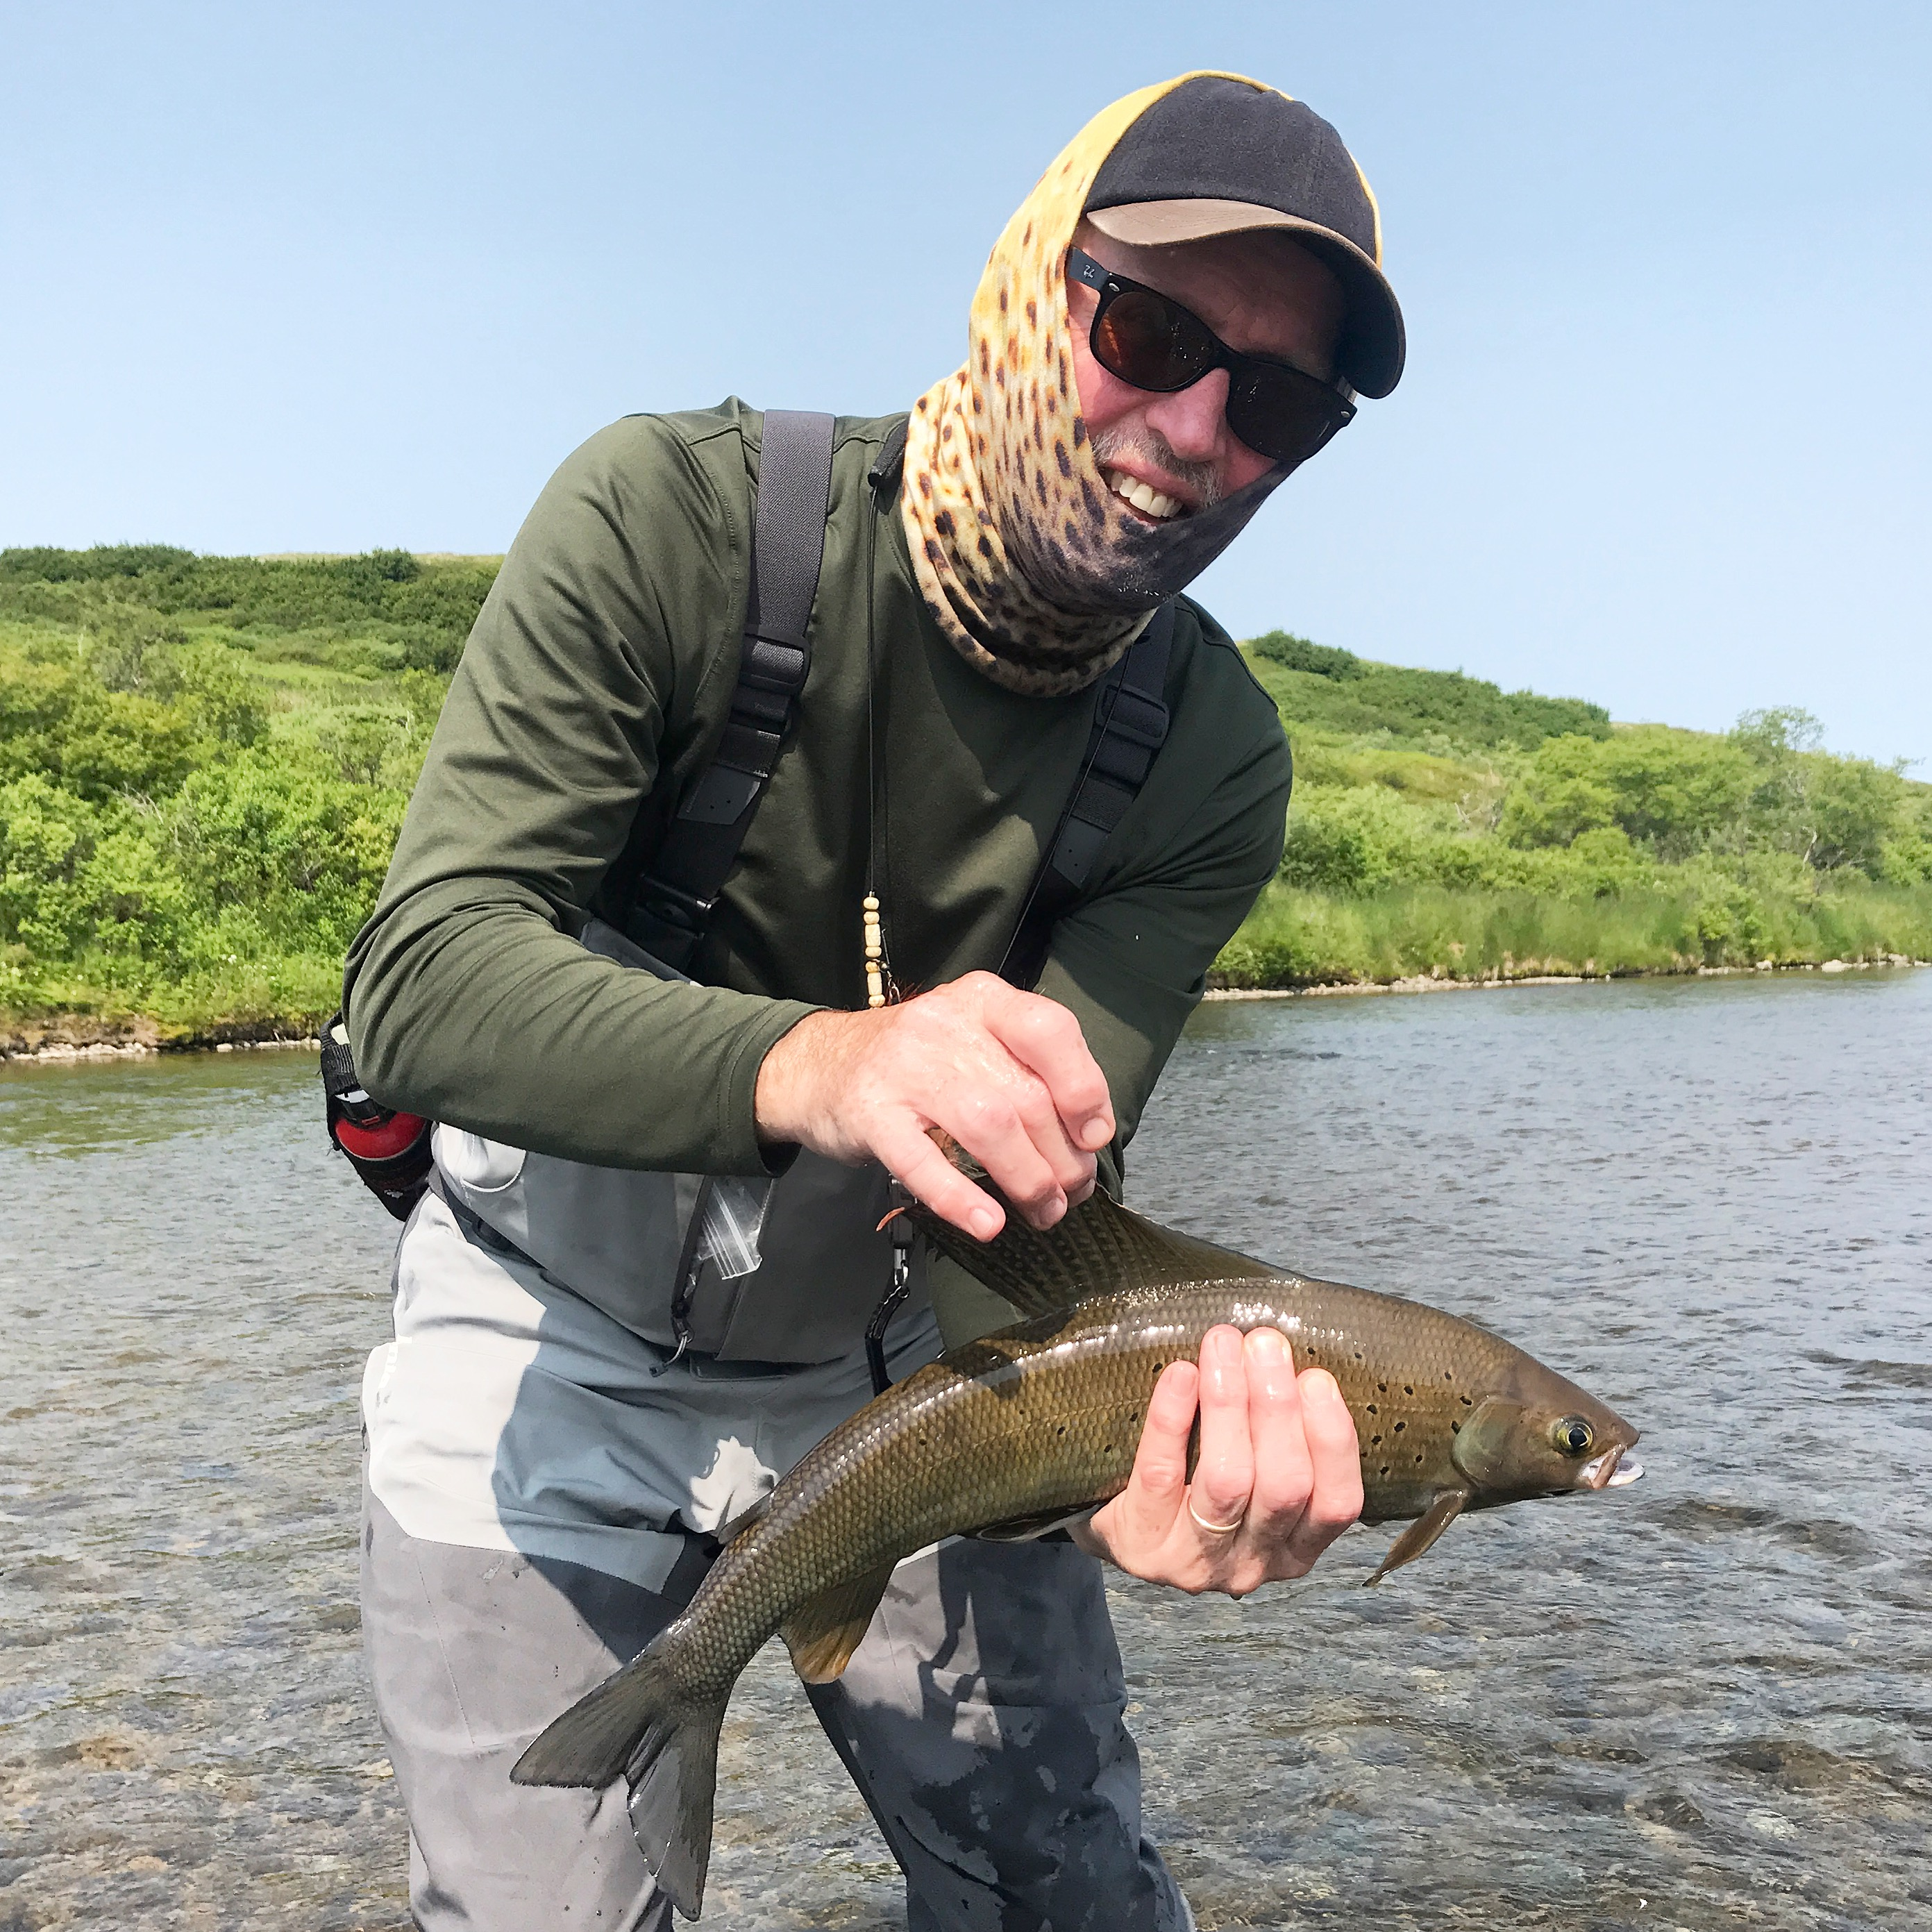 Fly Fishing Mouse patterns Alaska wilderness rainbow trout solitude adventure King Salmon Dolly Varden Char Grayling